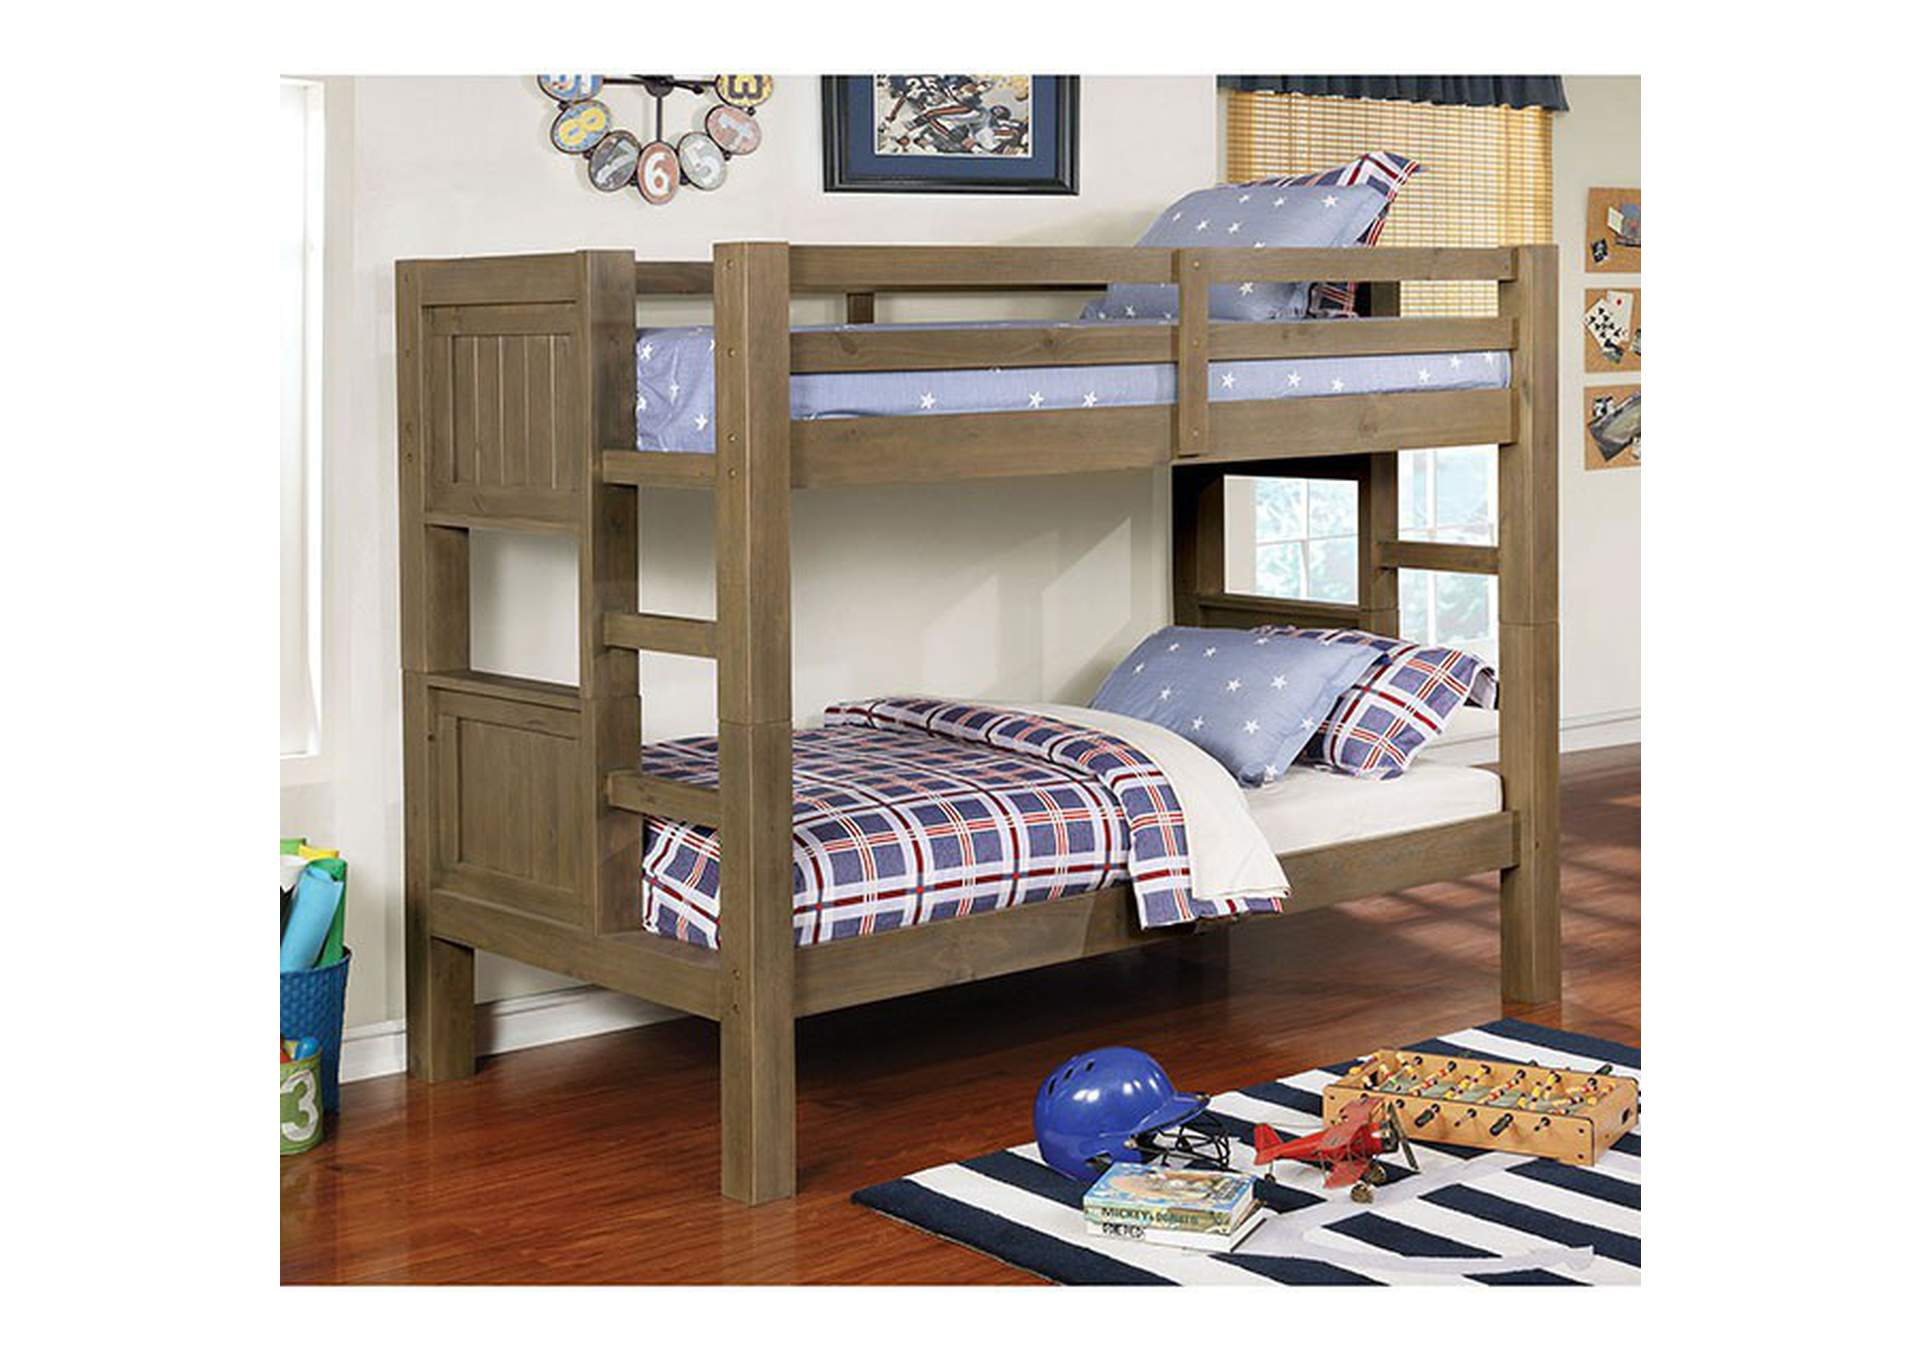 Kindred Wire-Brushed Gray Twin/Twin Bunk Bed,Furniture of America